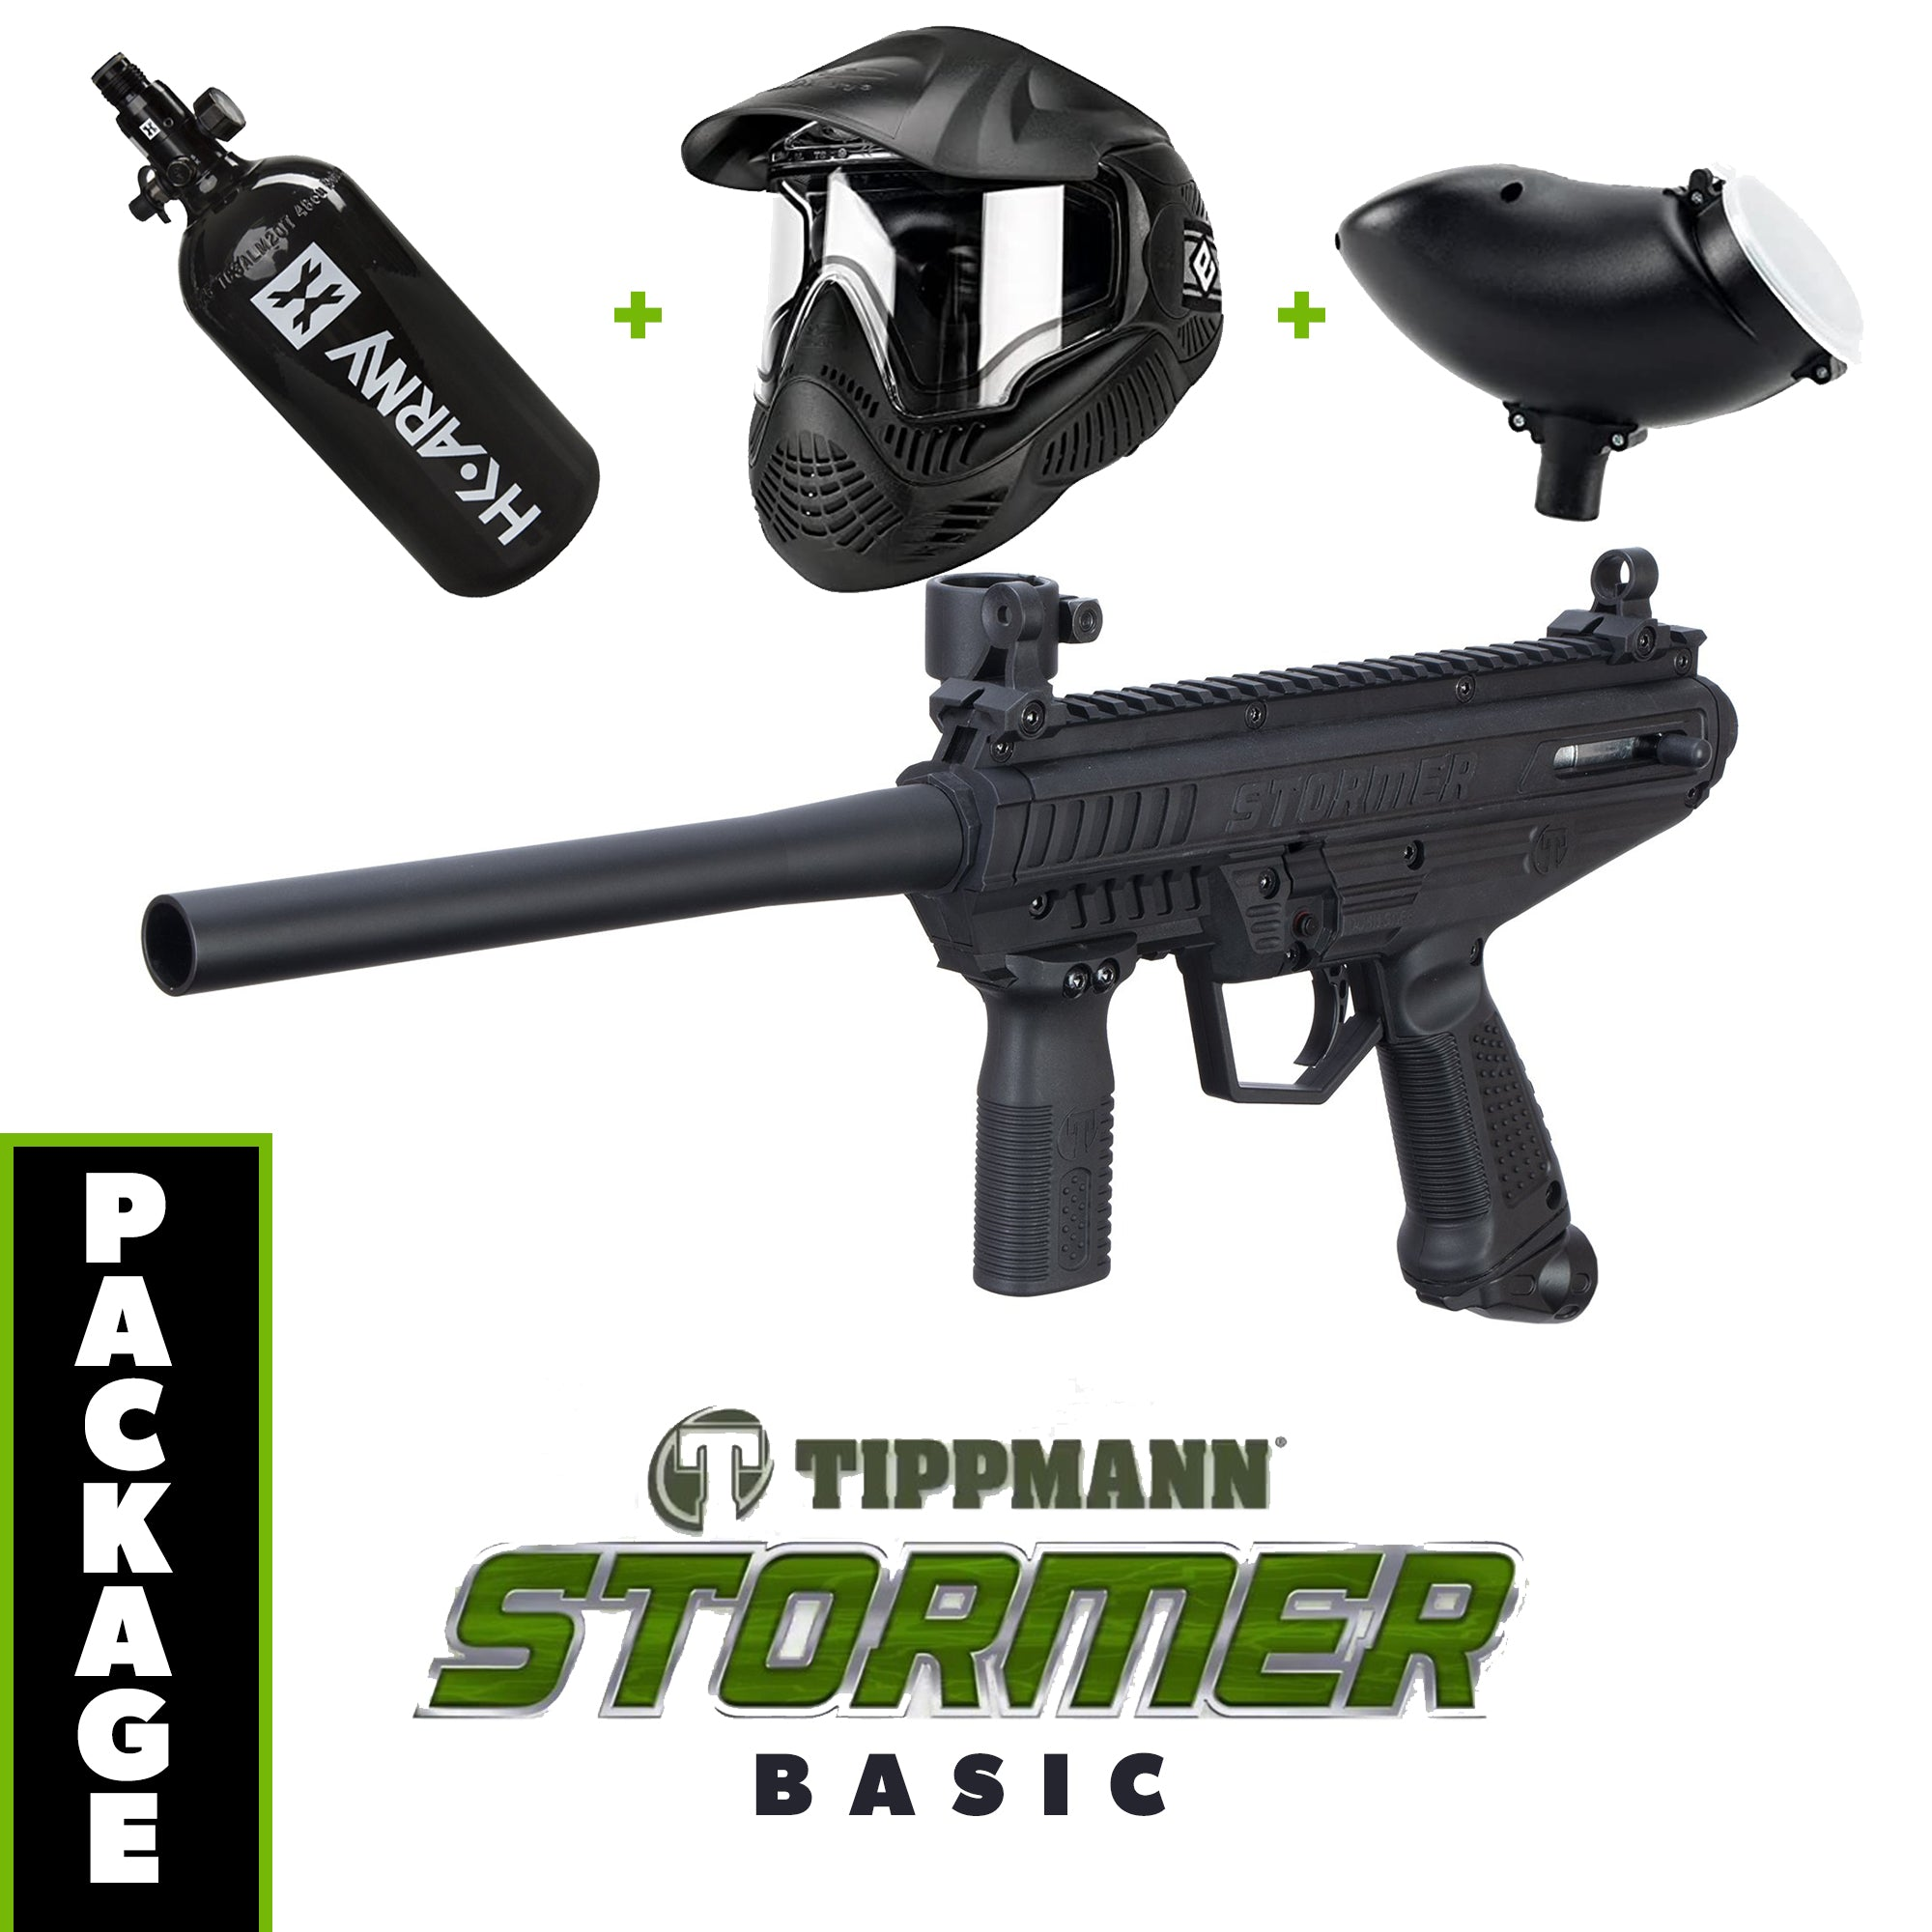 Tippmann Stormer - Basic COMBO Package with Tank, Hopper, Goggle